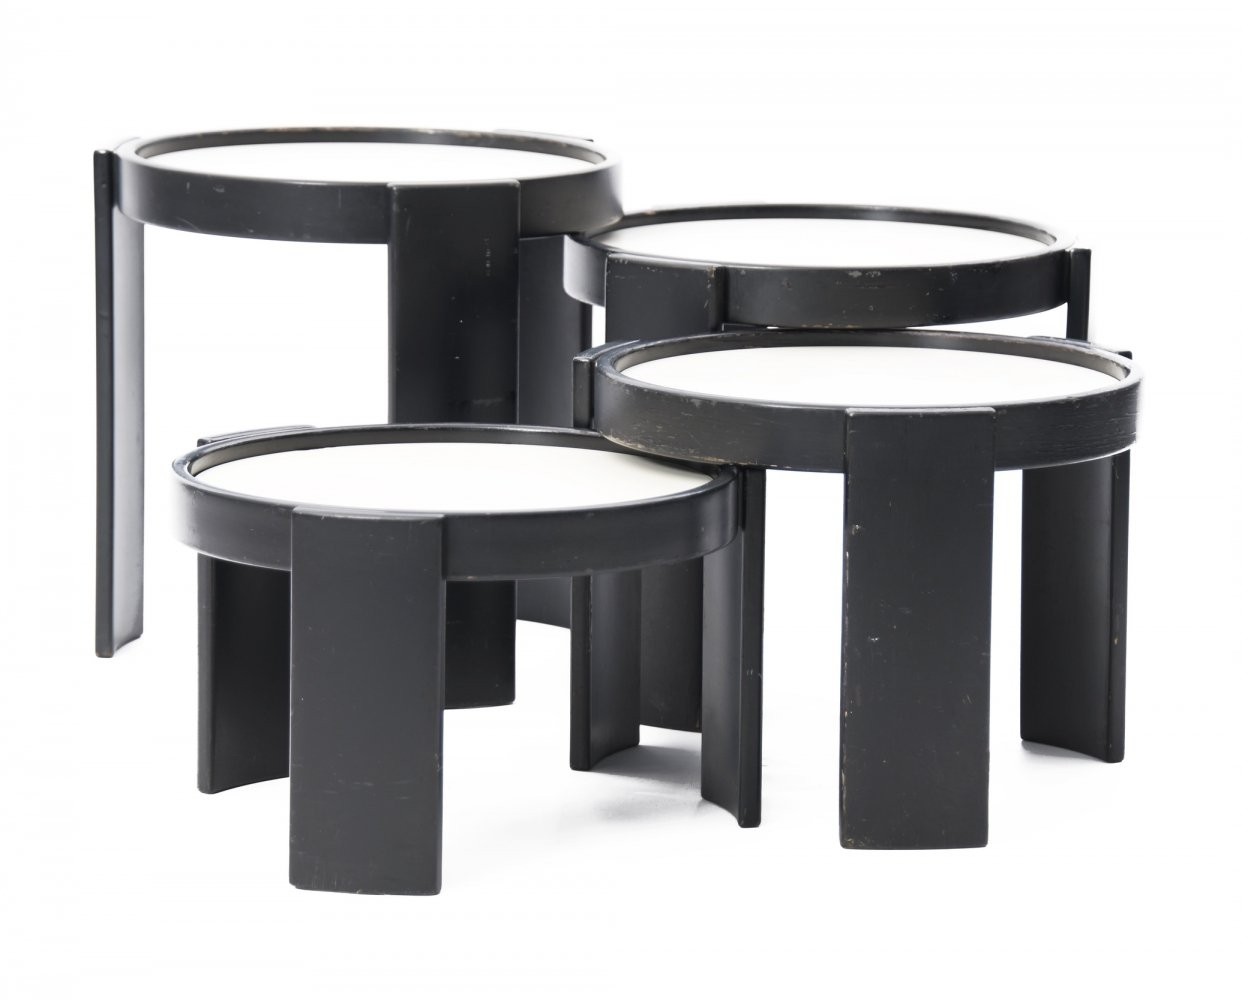 Early edition & matching set Model 780 nesting tables by Gianfranco Frattini for Cassina, labeled 1960s